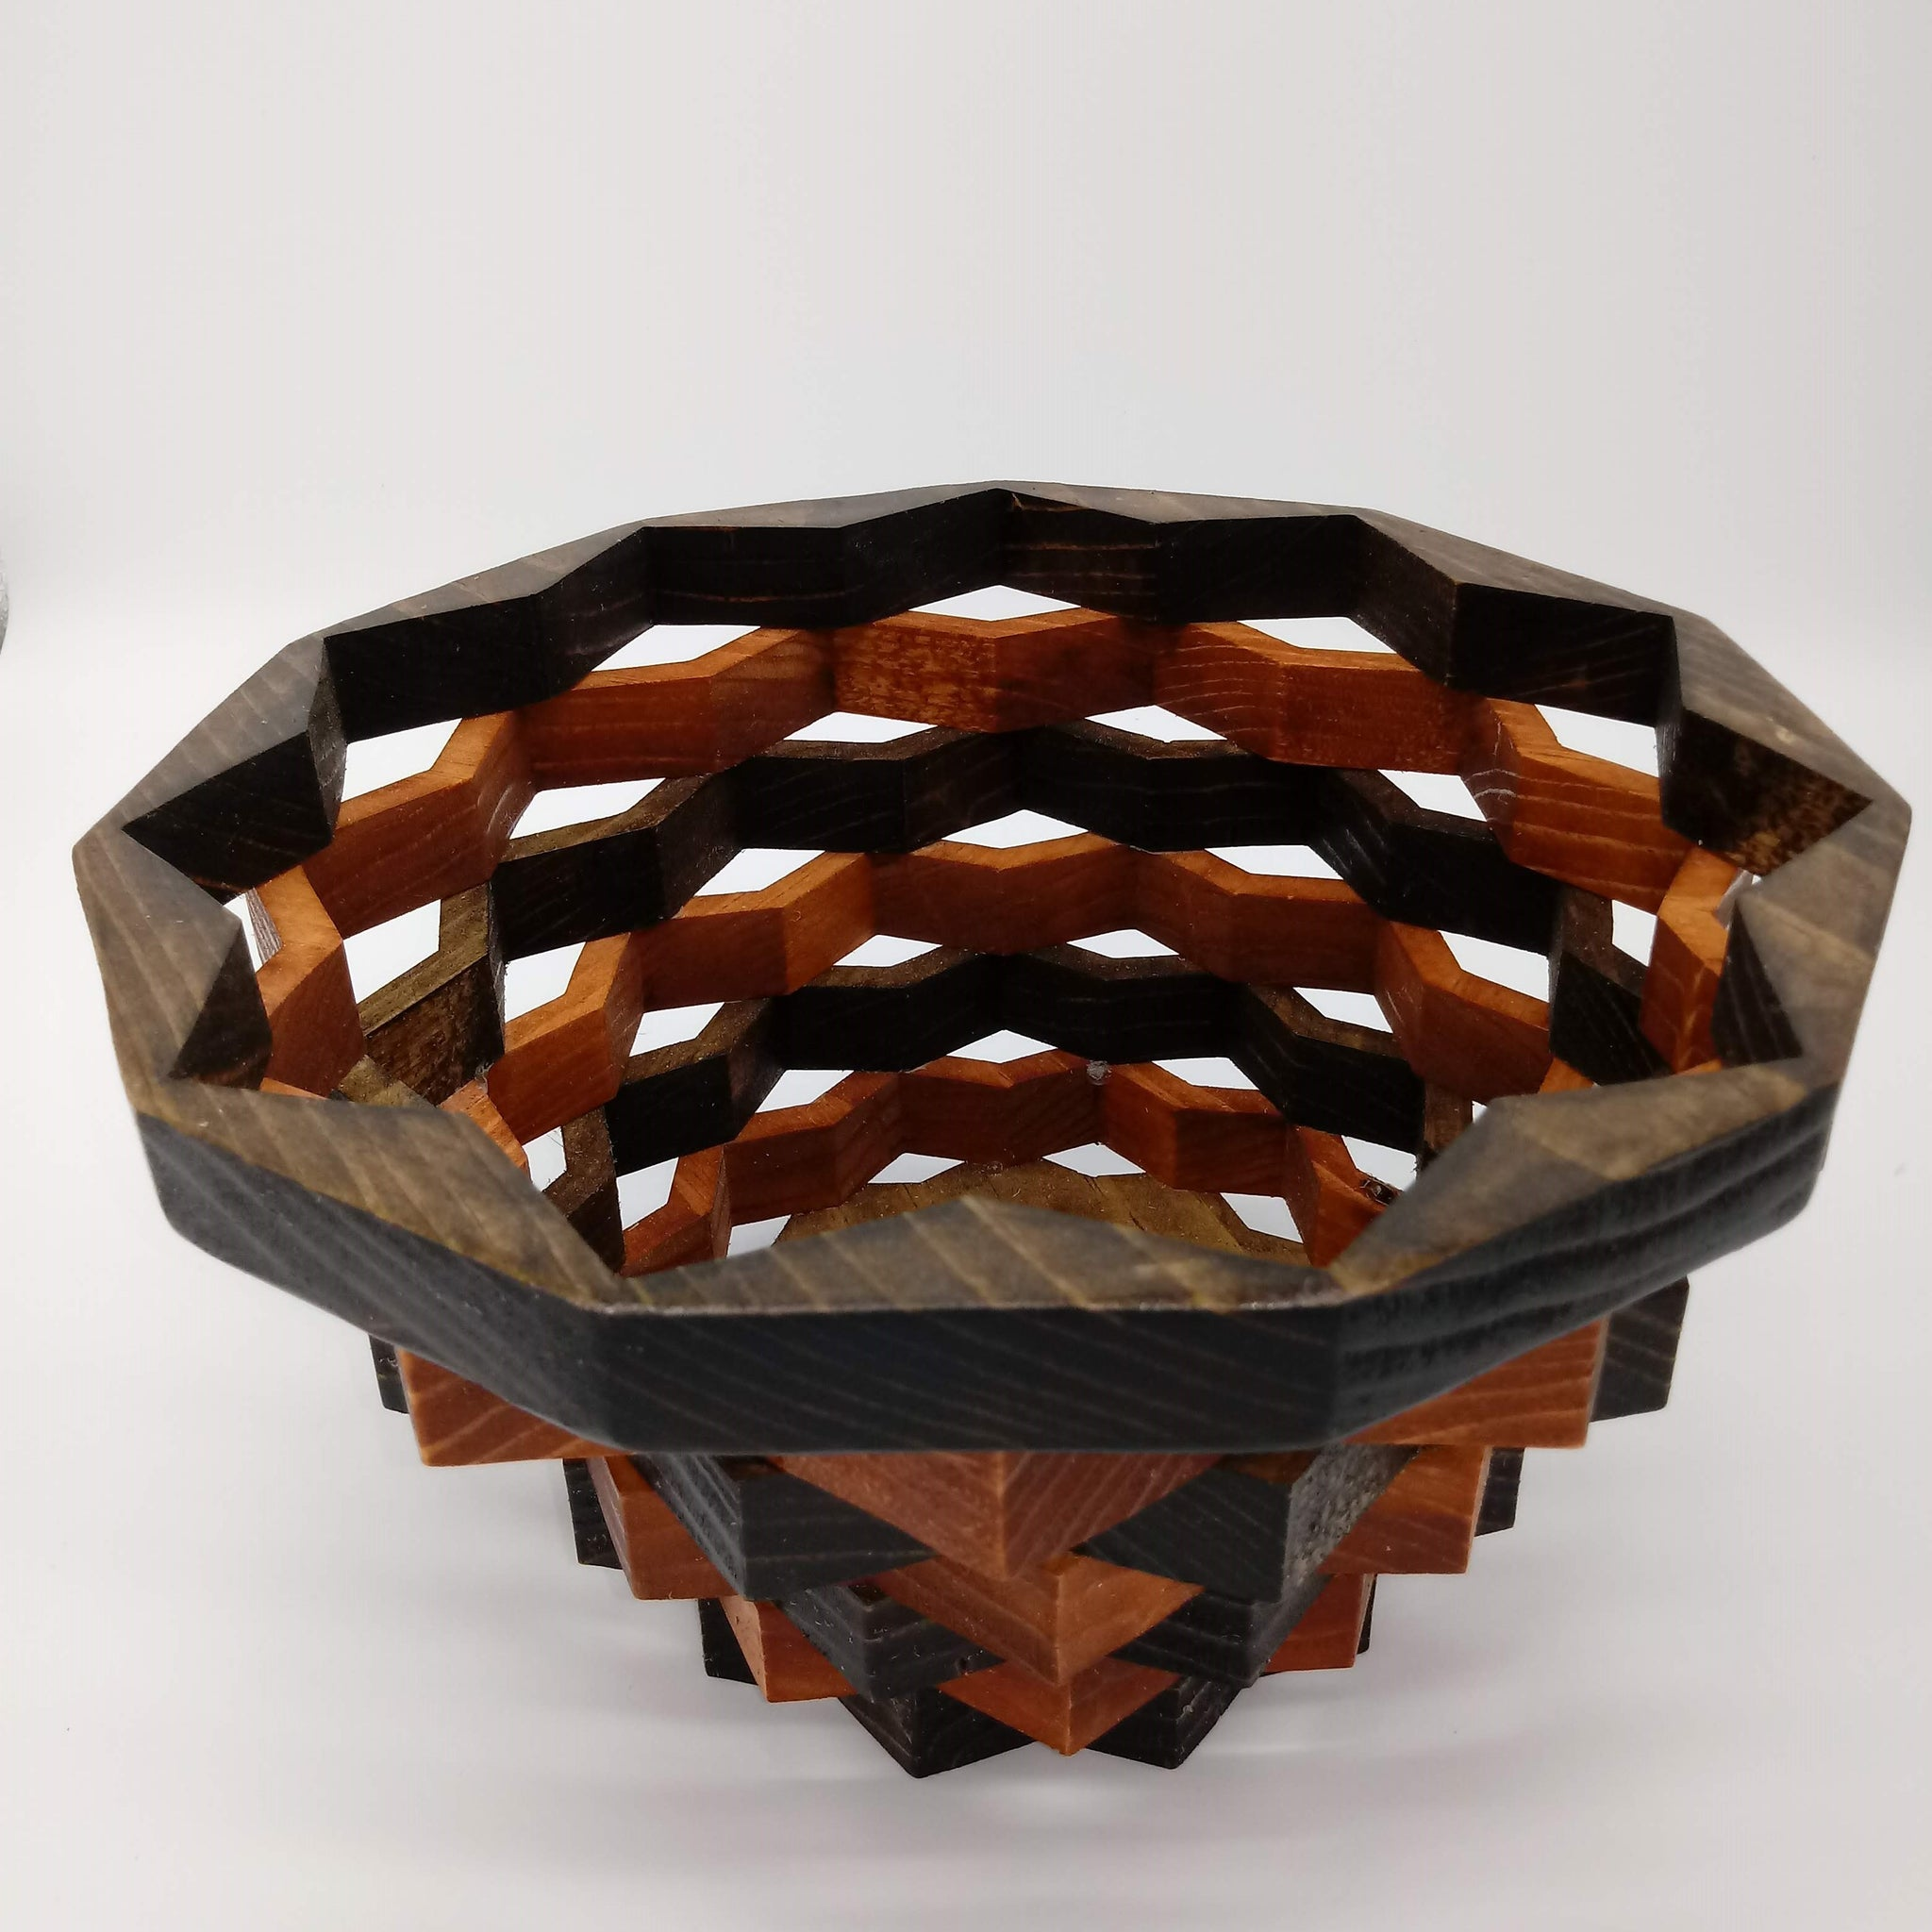 Five Ring Stacked Wood Star Basket - Kripp's Kreations